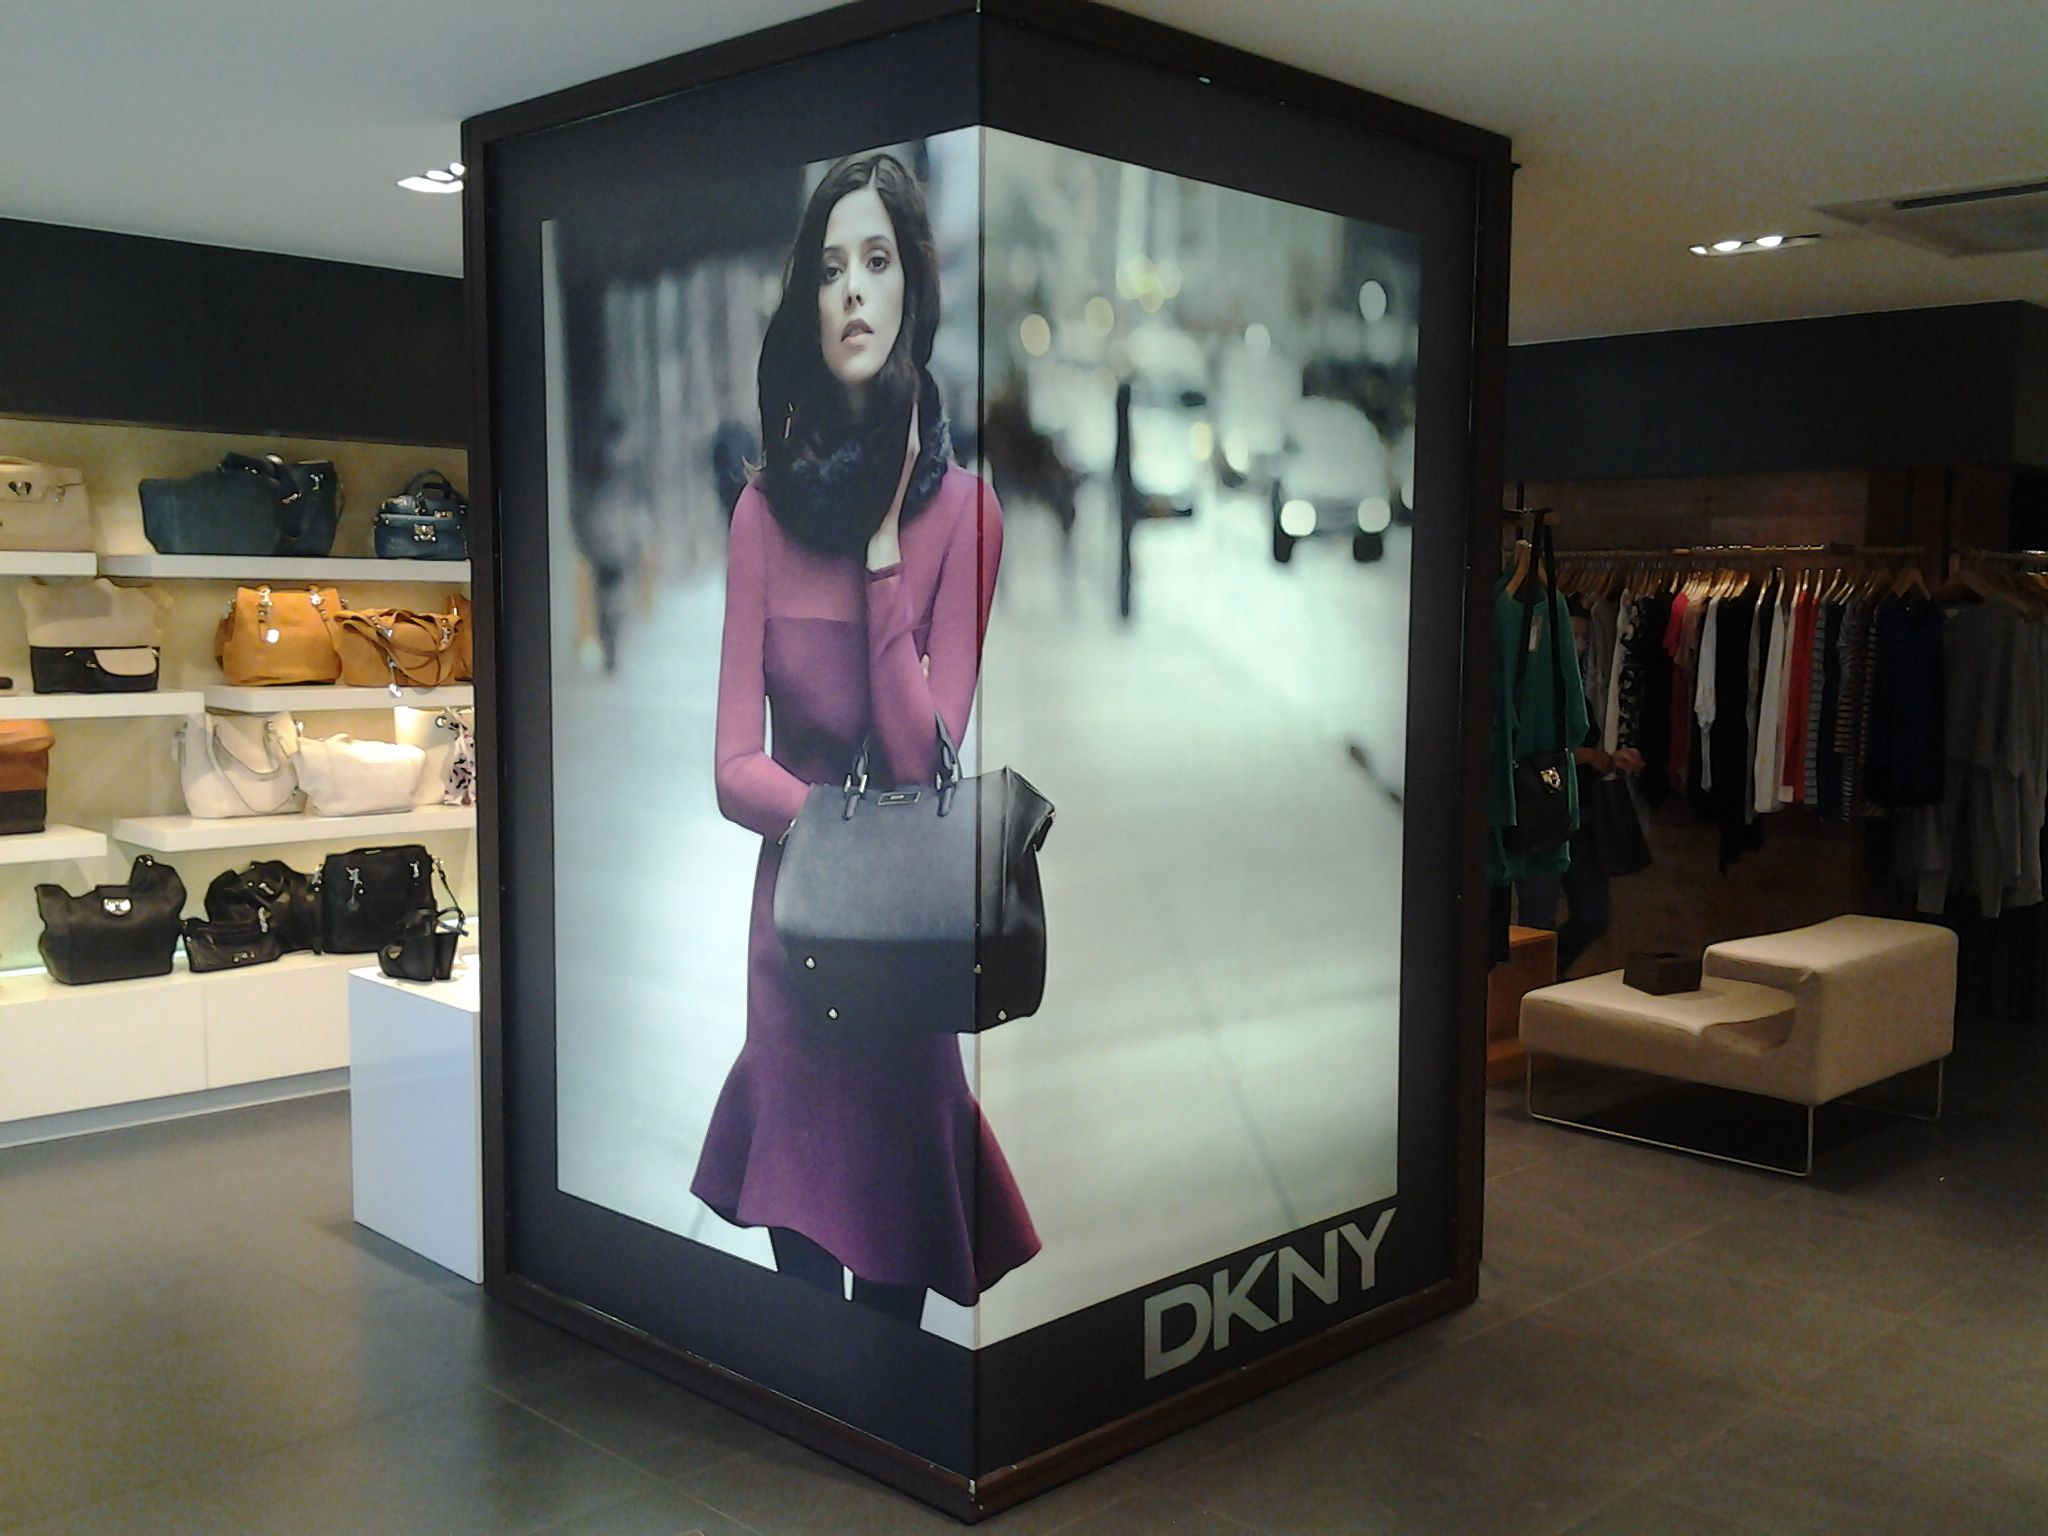 DKNY Fall 2012 In-Store Light Box visual